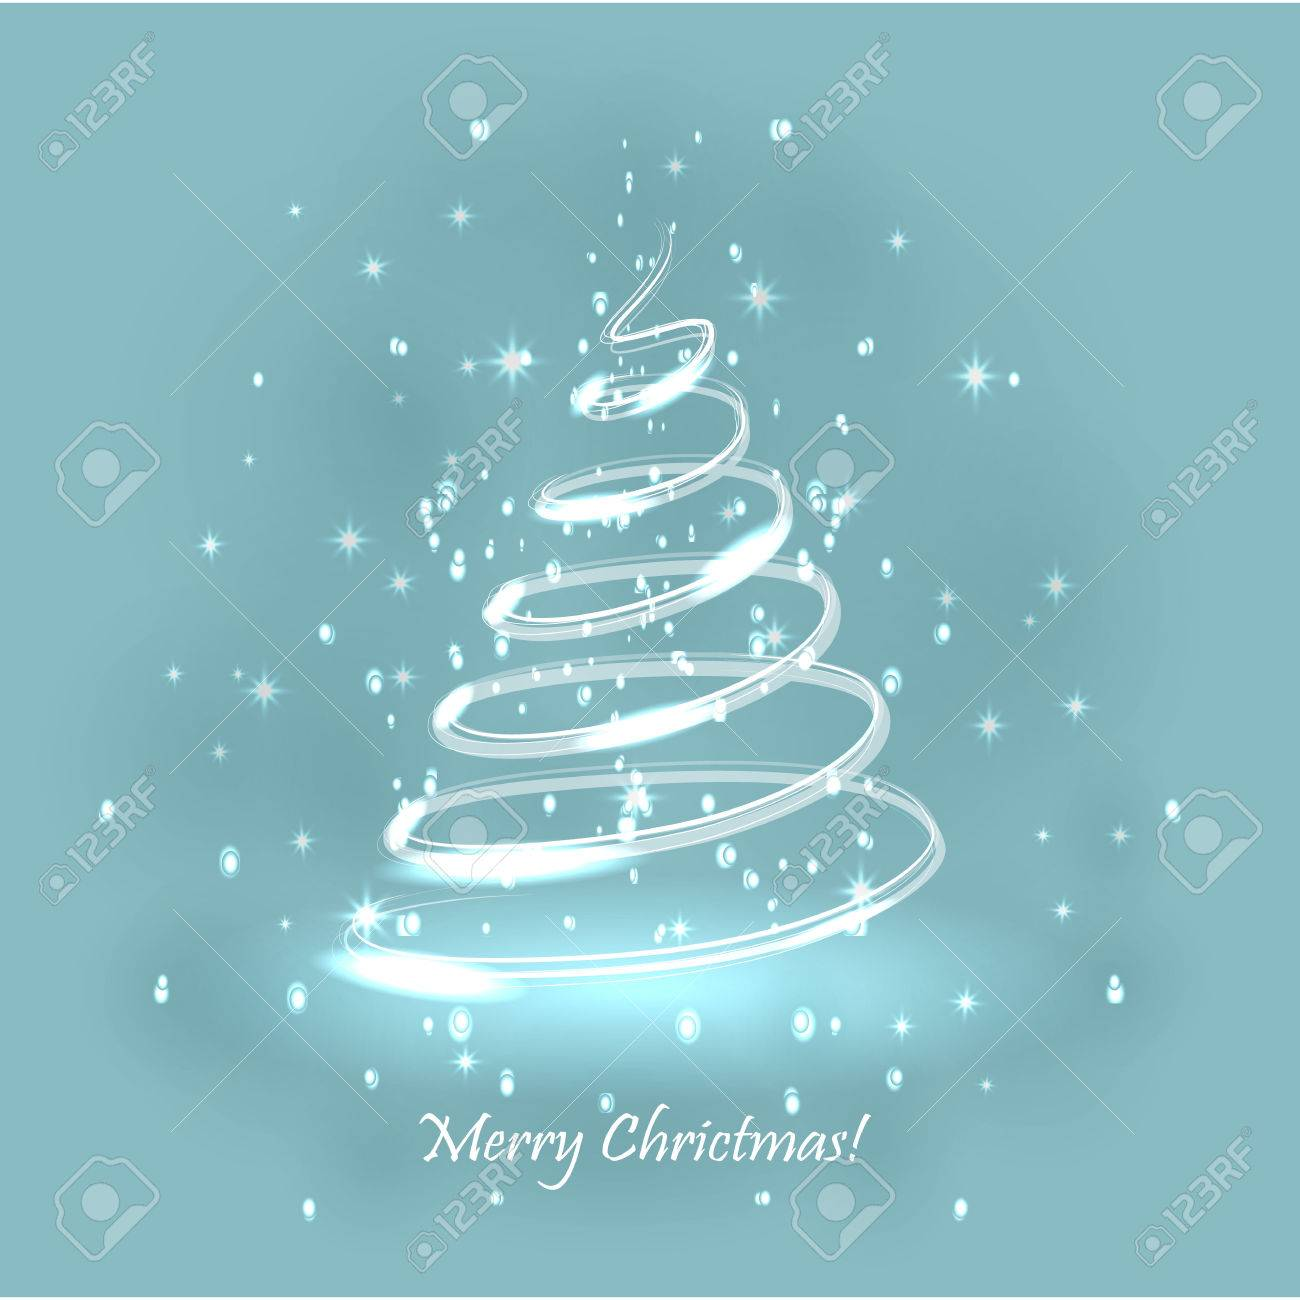 Magic Christmas Tree Light Blue Background Christmas Card Royalty Free Cliparts Vetores E Ilustracoes Stock Image 63417771